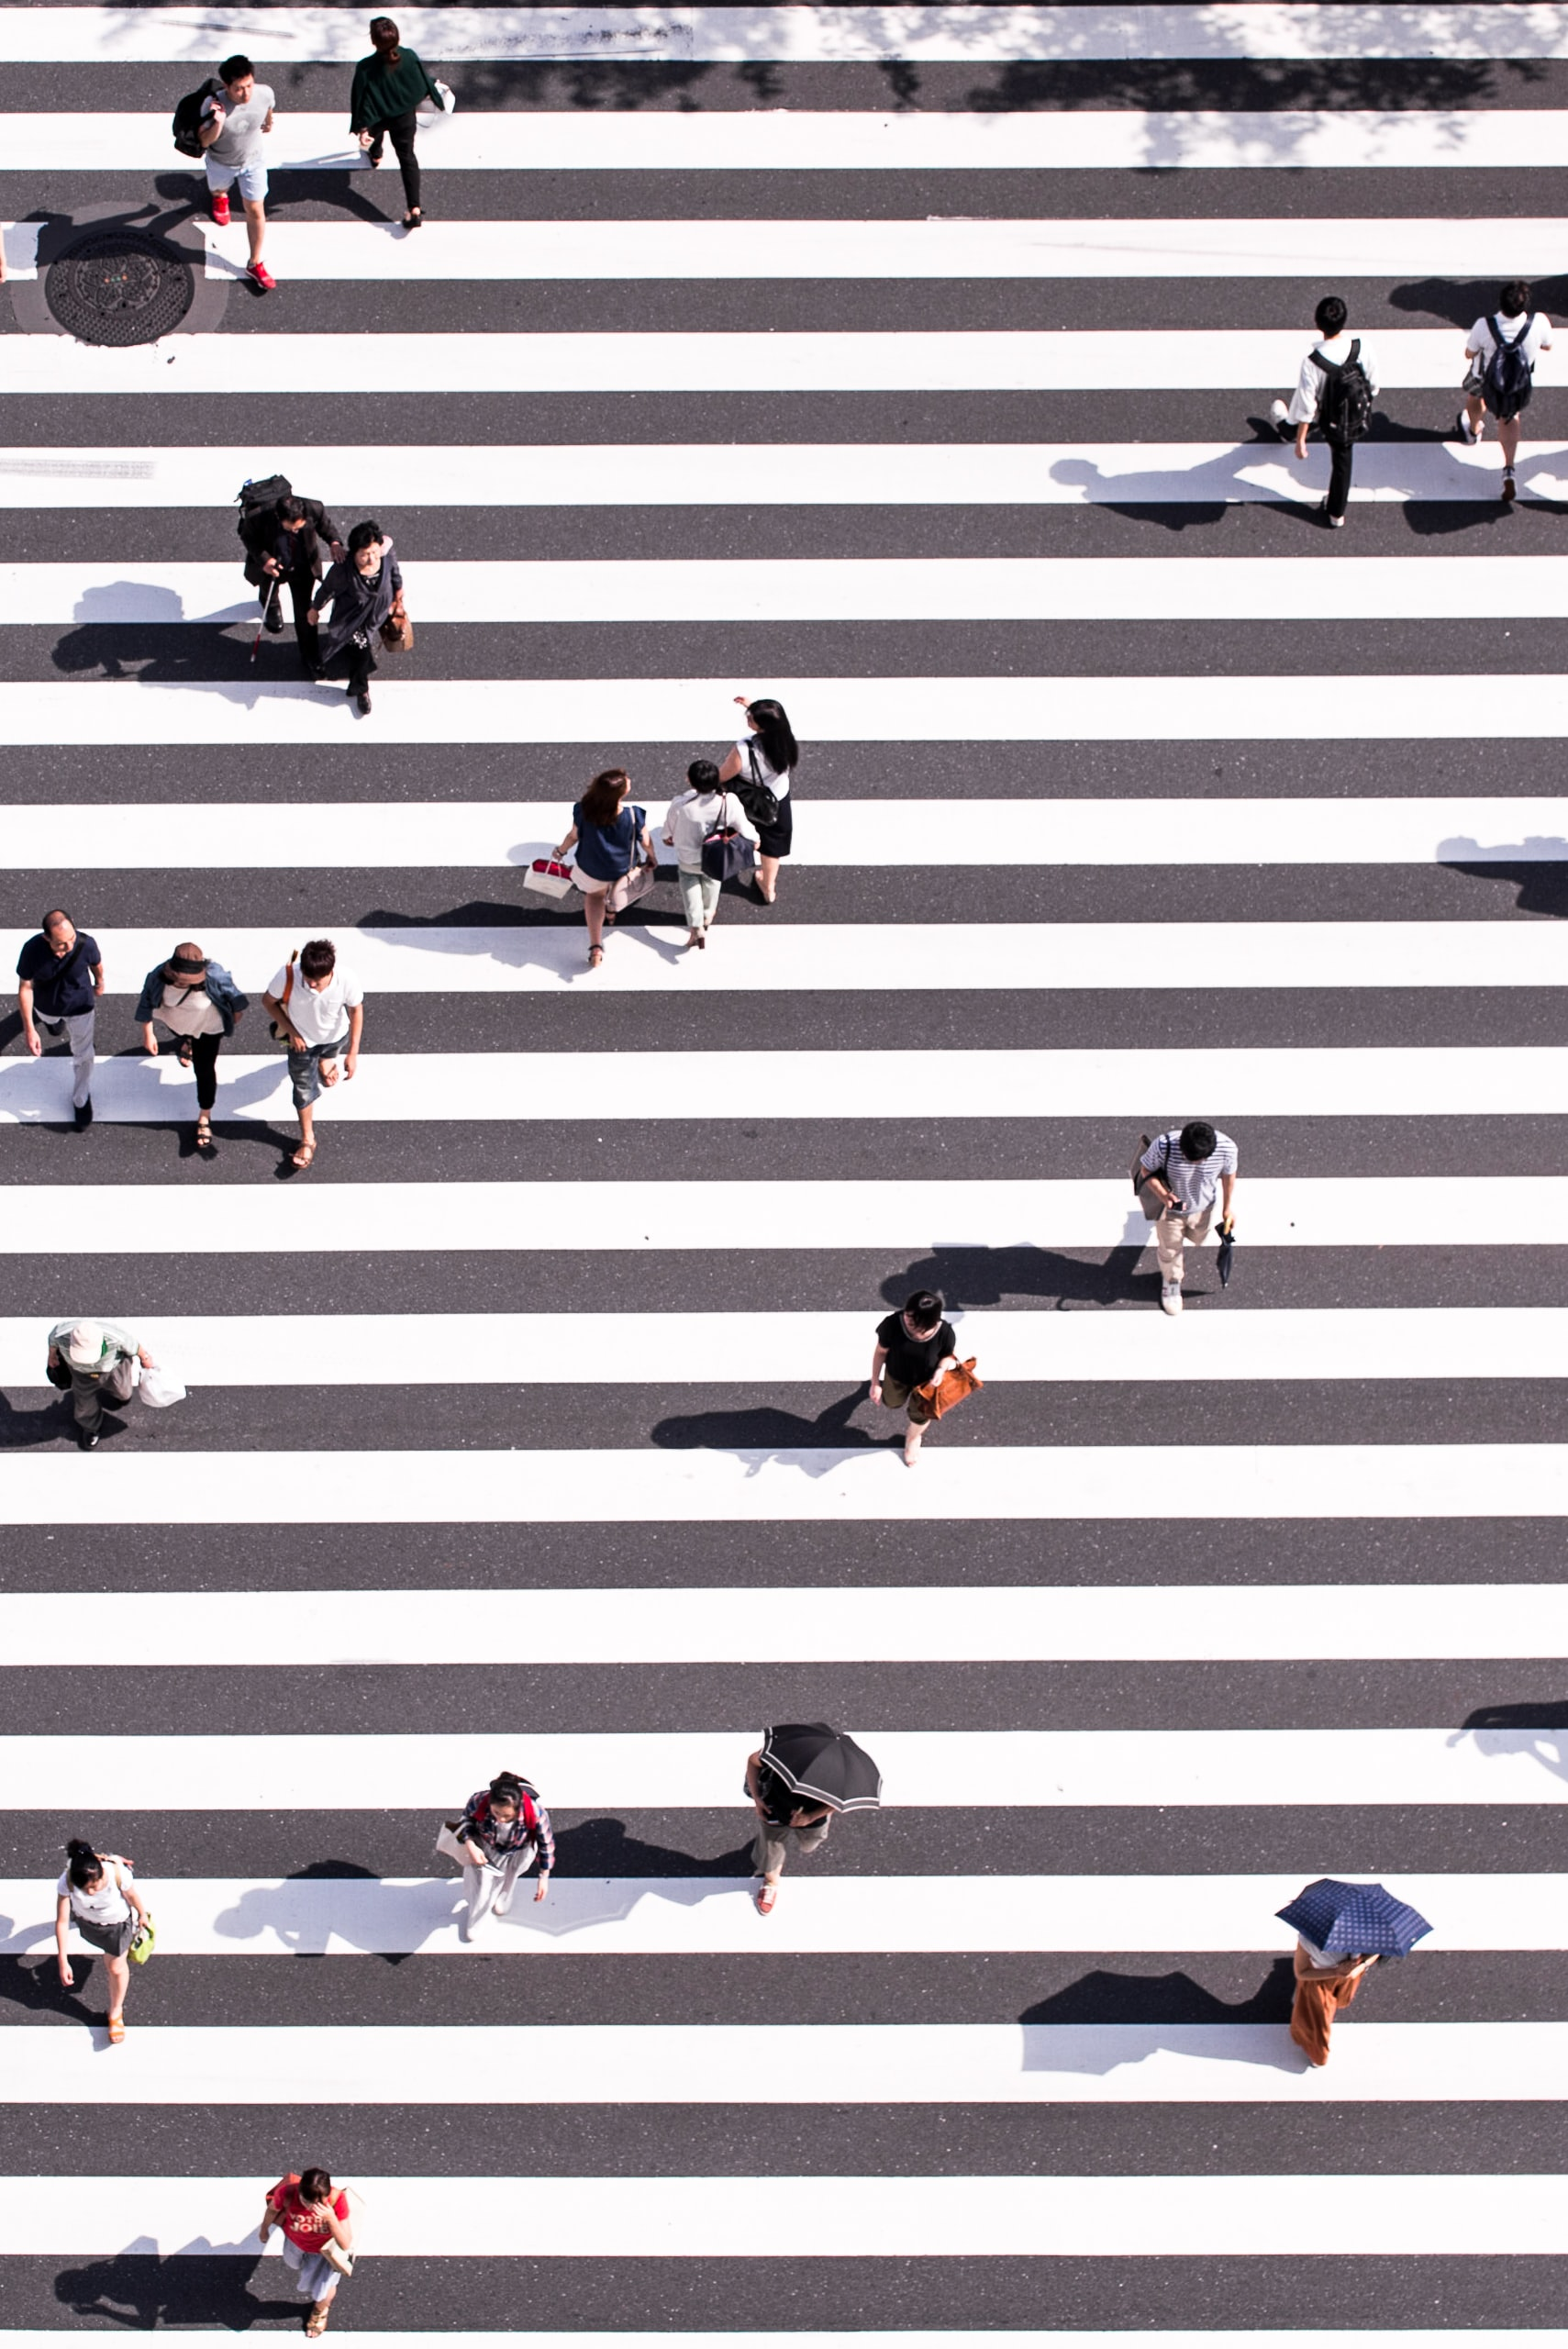 aerial view photography of group of people walking on gray and white pedestrian lane